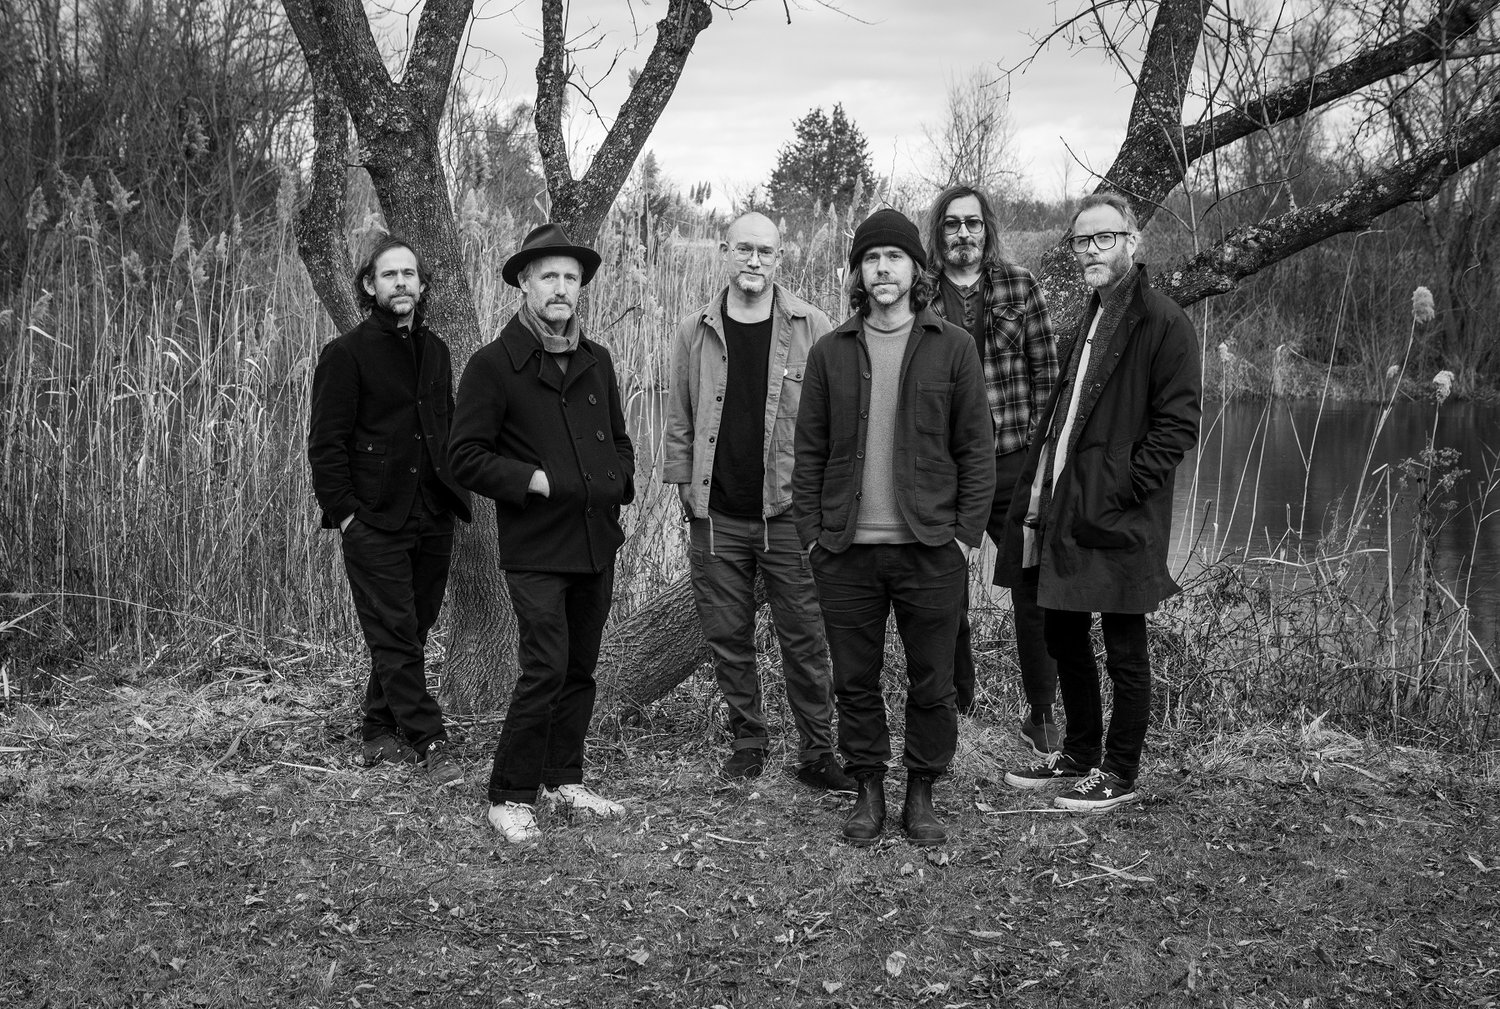 Grammy Award-winning Indie band, The National, will perform at The Amp on June 17.